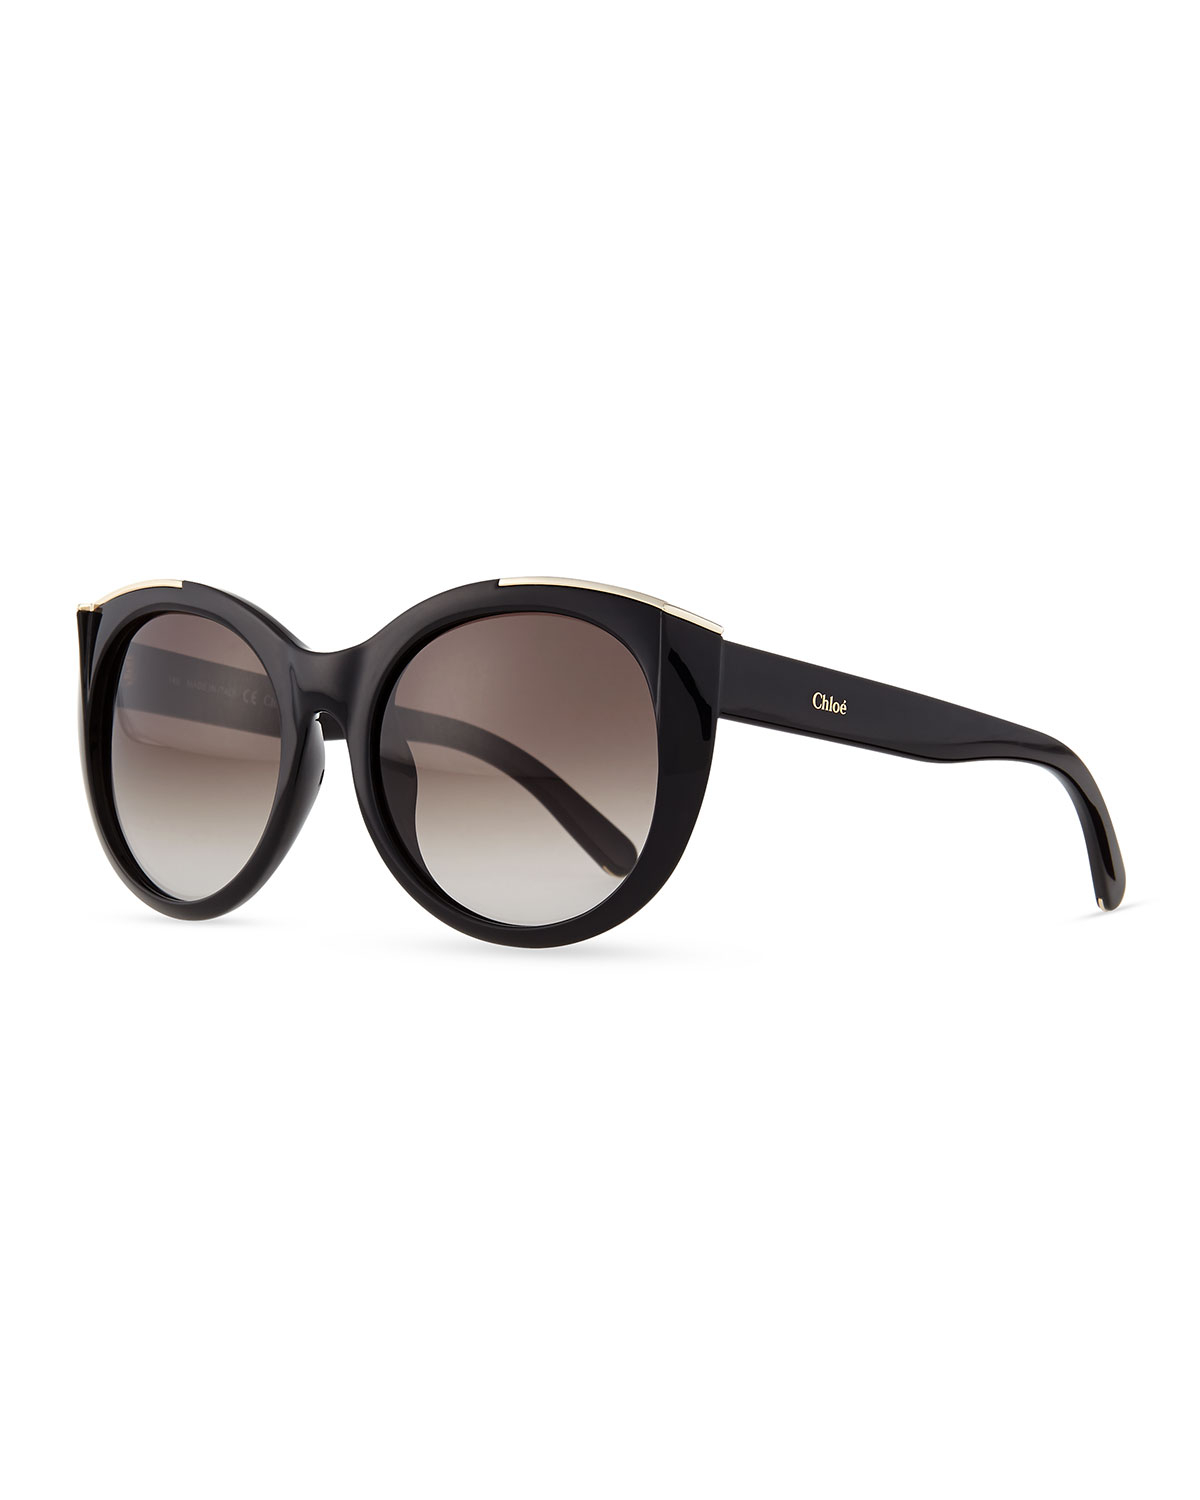 chloe sunglasses g8im  Gallery